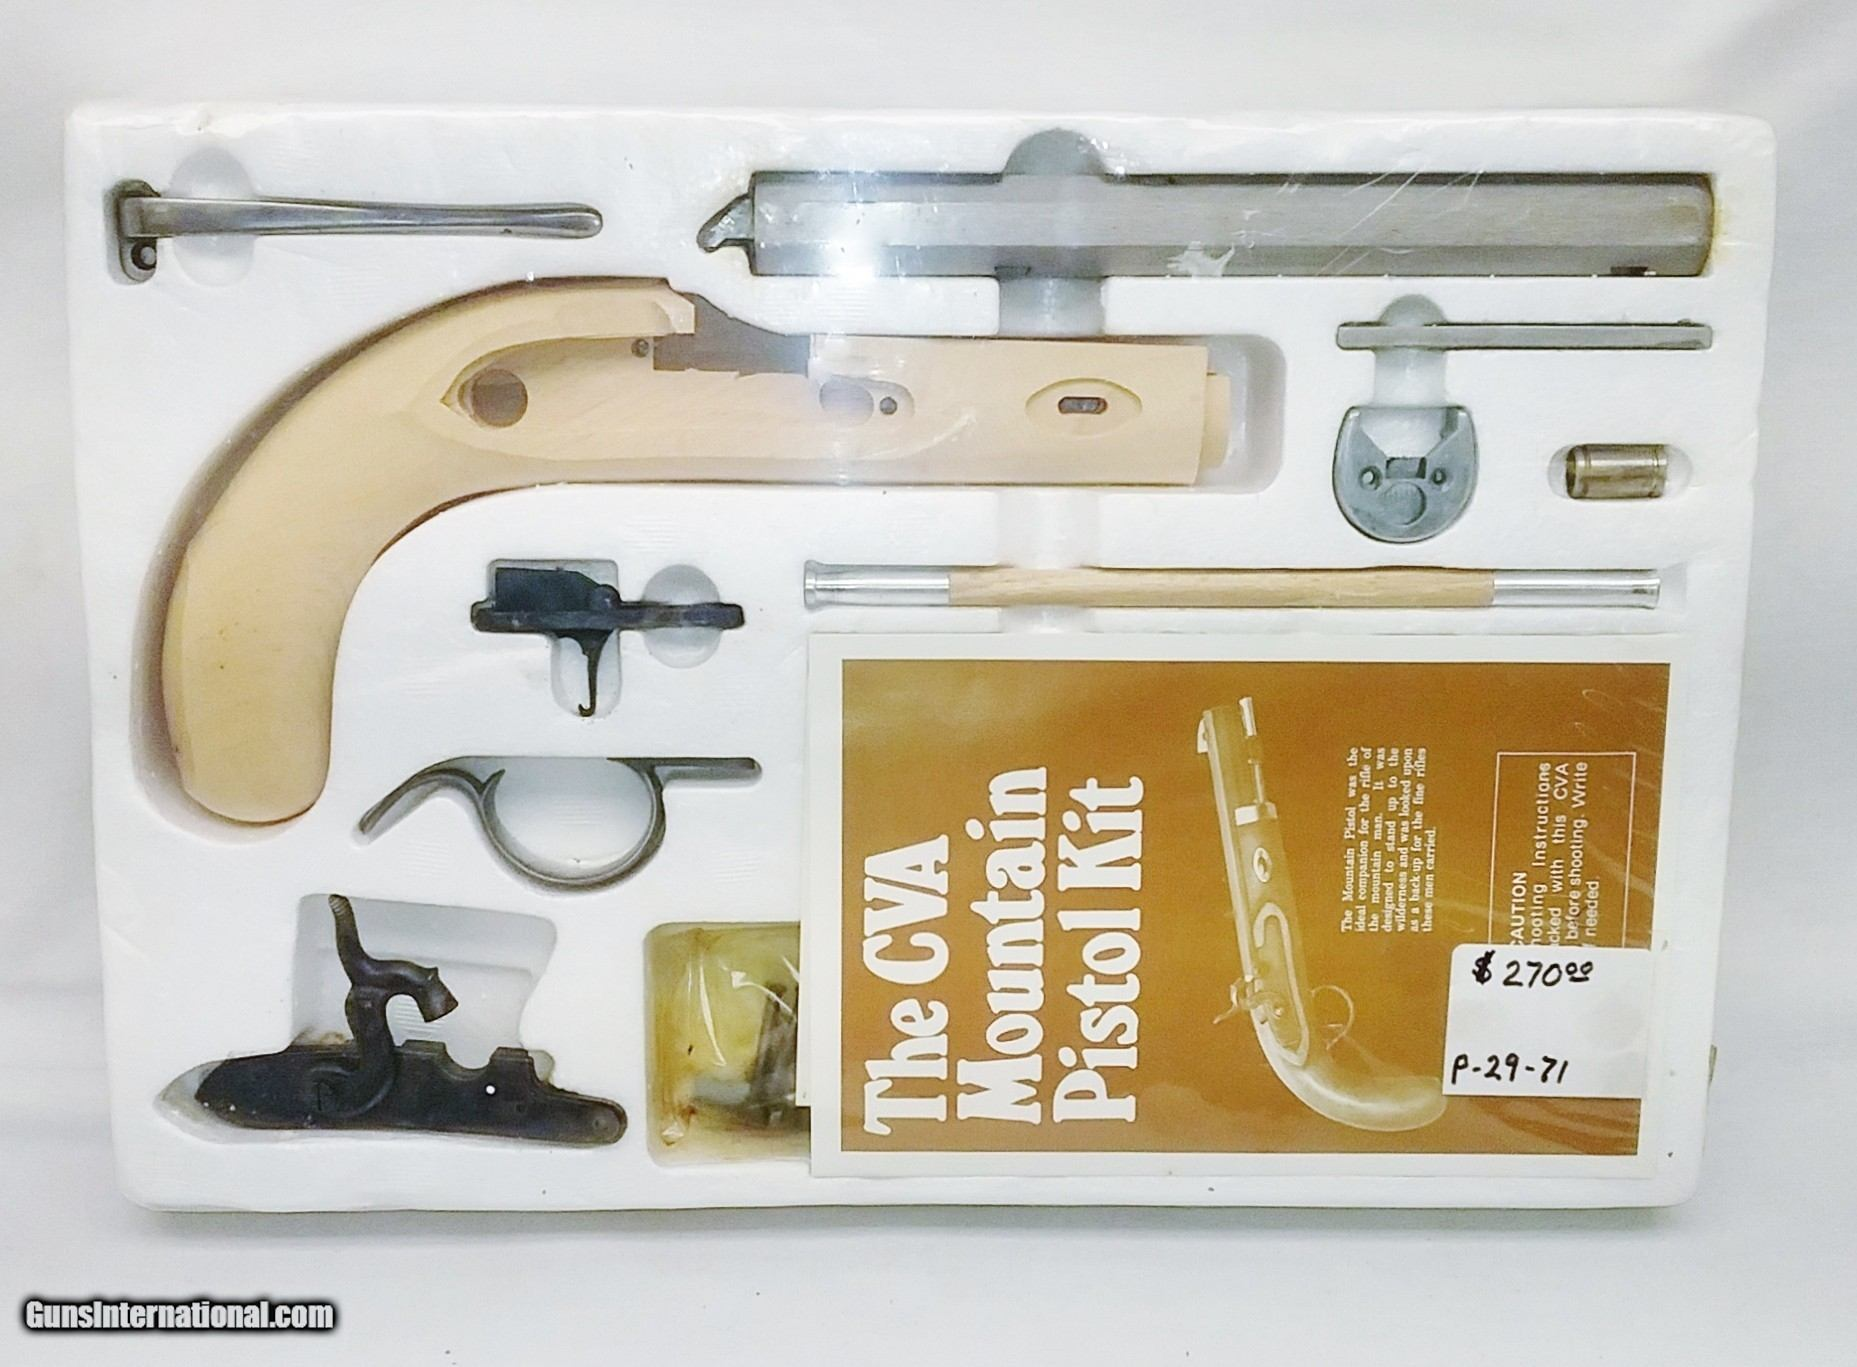 Kit - Mountain - Percussion - 45Cal by CVA Stk# P-29-71 for sale